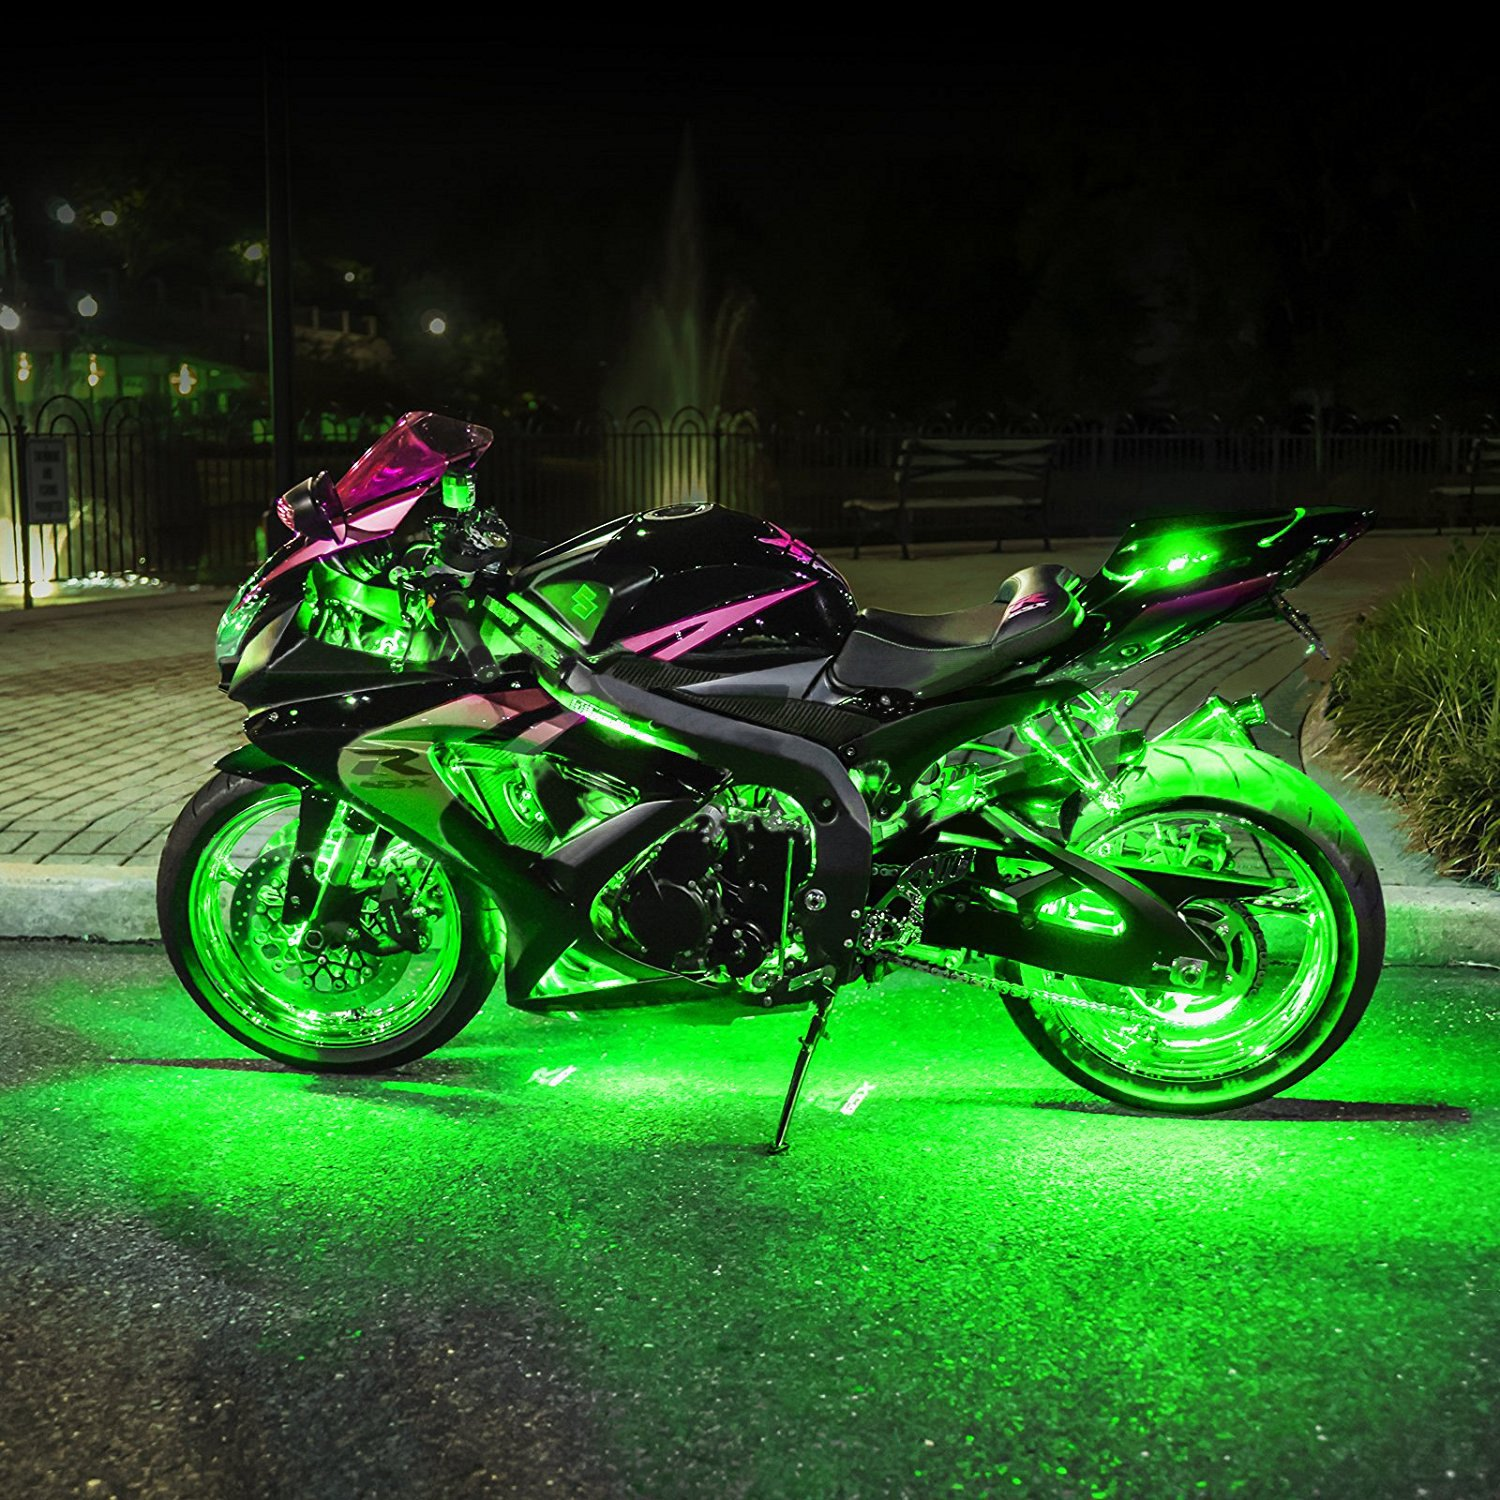 Xkglow xk034001 g green single color motorcycle underglow led pod kit - Underglow neon ...